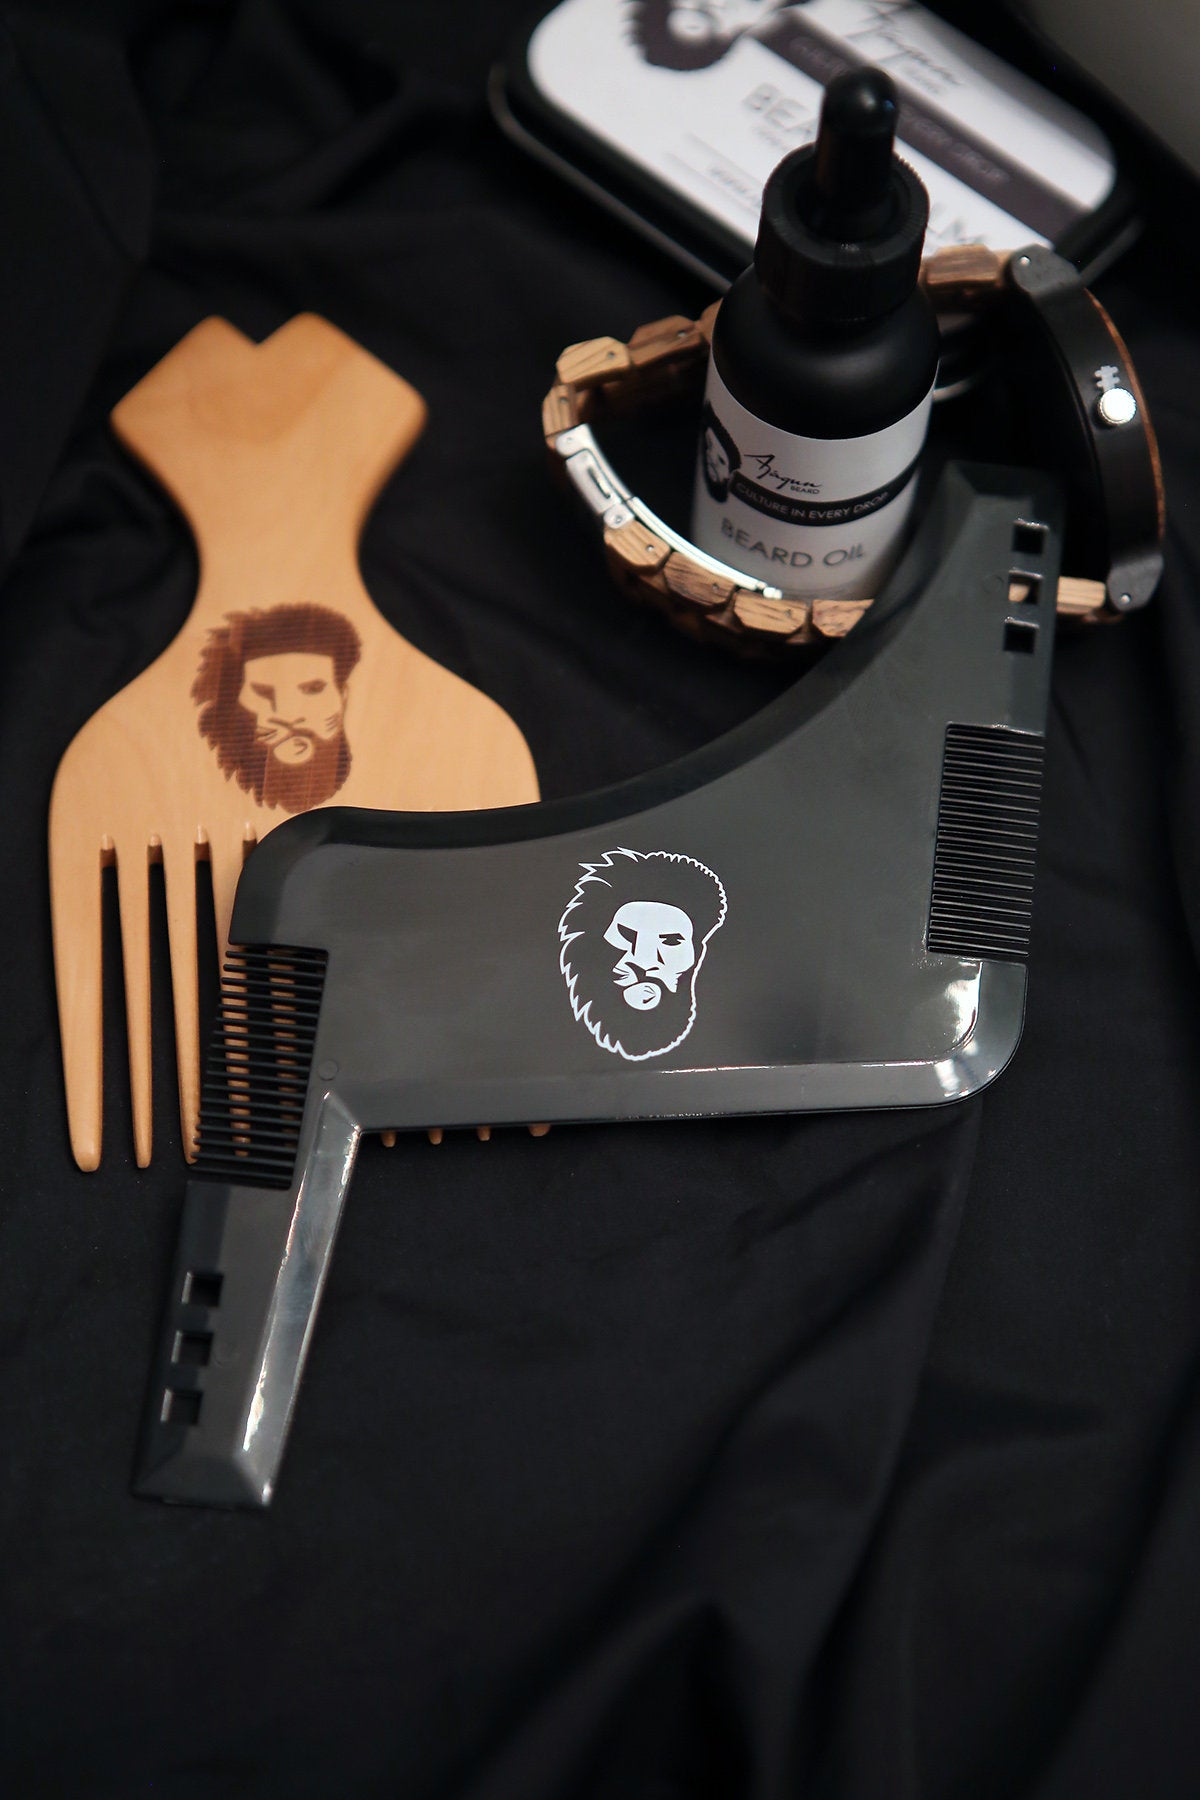 Ajagun Beard Grooming Shaper